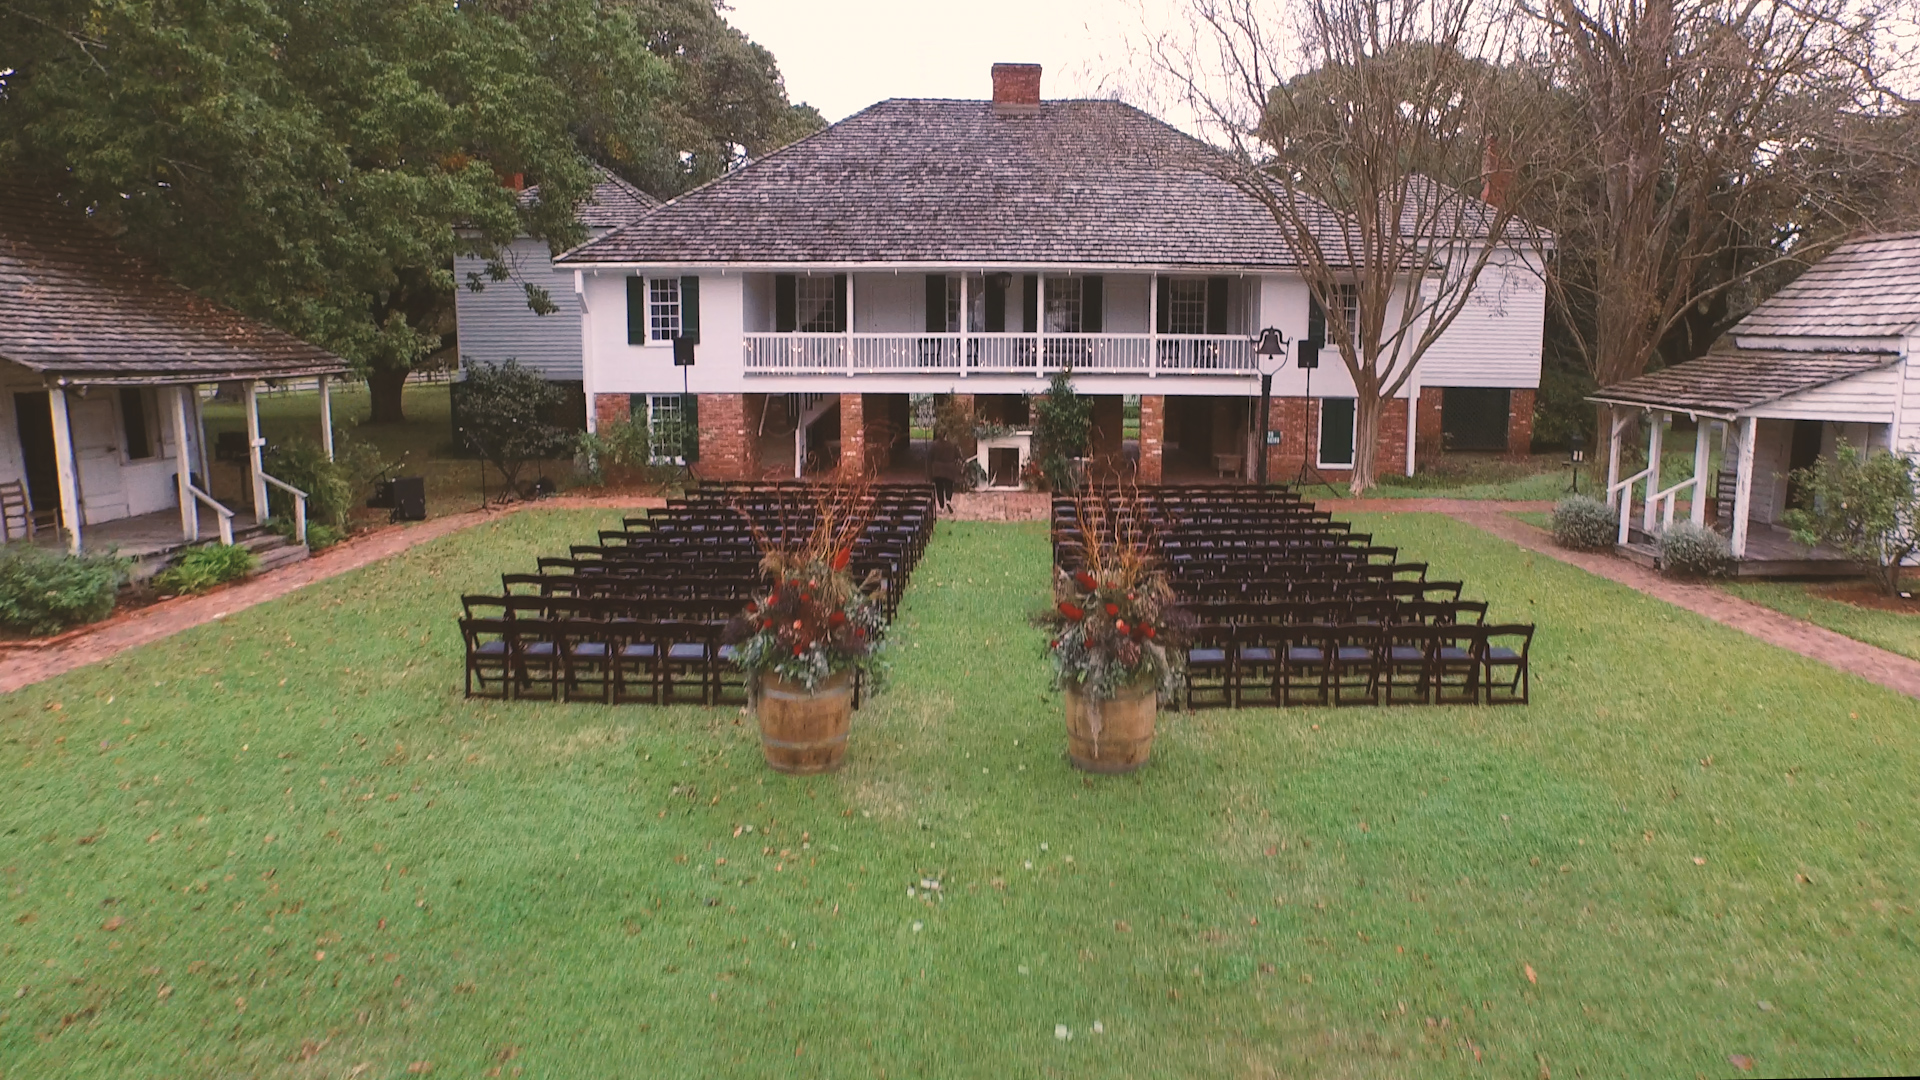 The ceremony setting was perfect for their intimate,emotional vows.